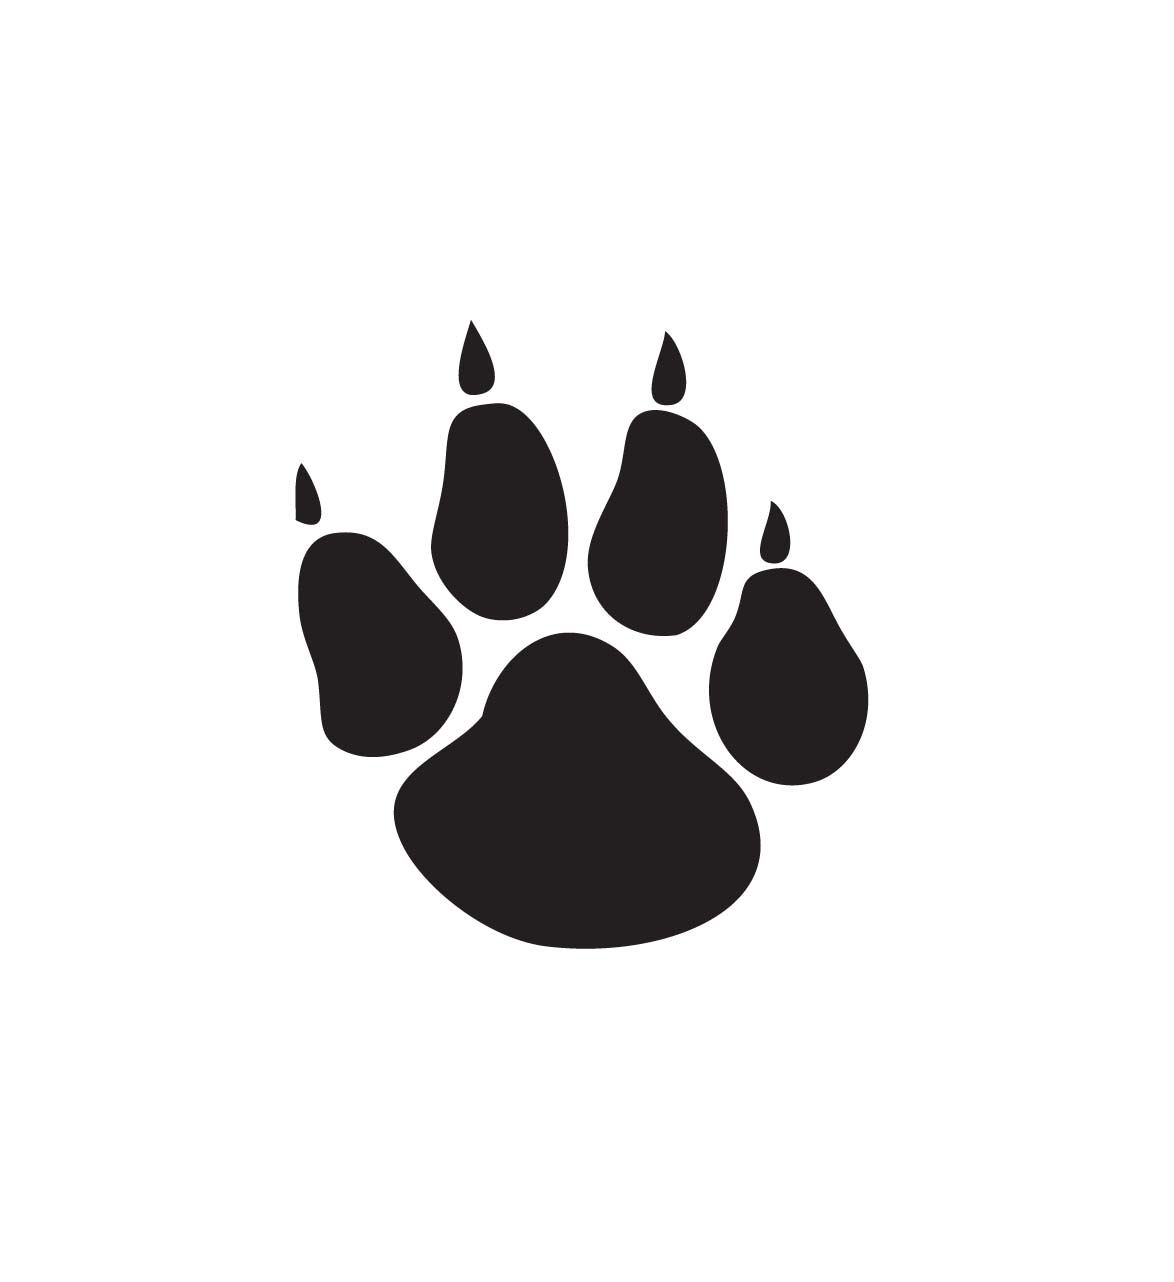 Clipart of the animal paw print free image.